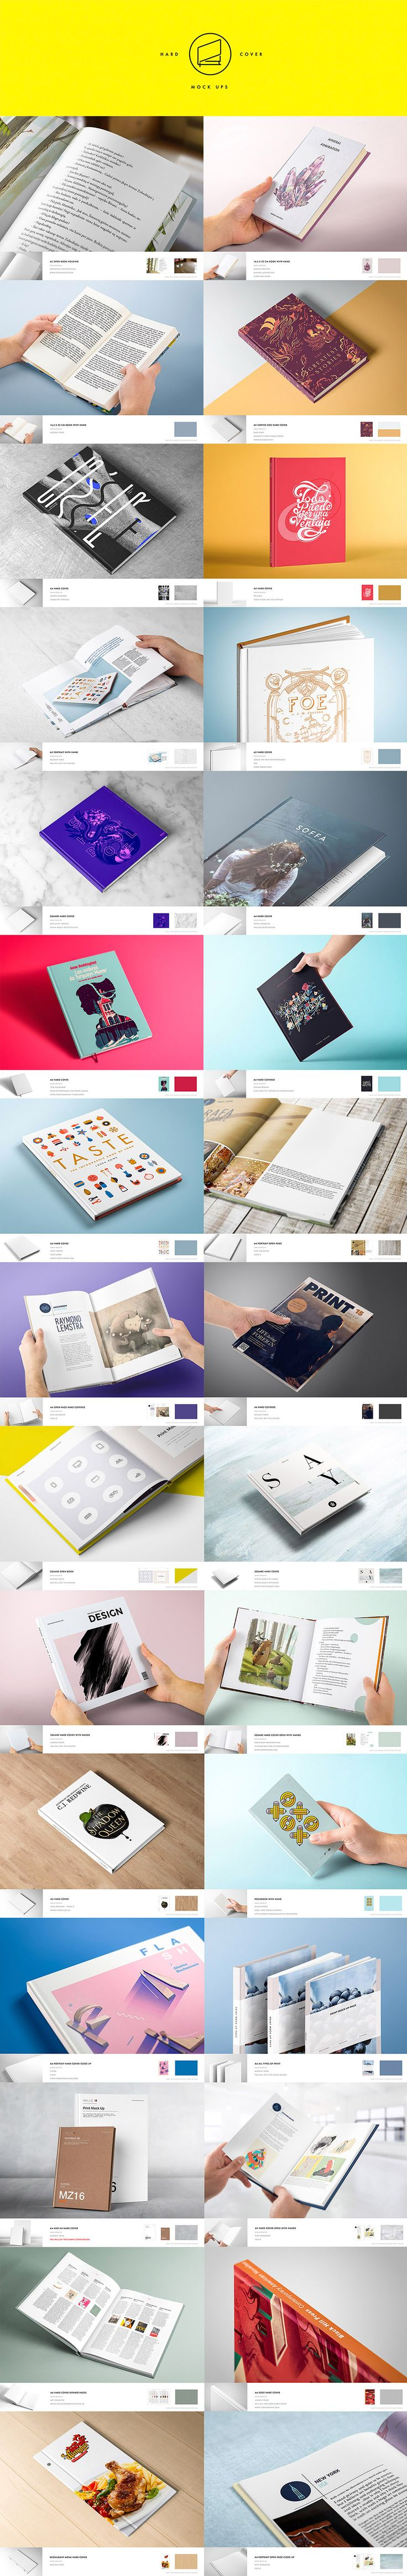 The world's most comprehensive print mockup pack! The Gigantic Mockup Templates Bundle includes this amazing Print Mock Up Pack from Mockup Zone! Display your designs on hard covers, soft covers, folded papers, posters/flyers as well as business cards. In Total: 129 Photo mockups and 75 Top-view mockups.